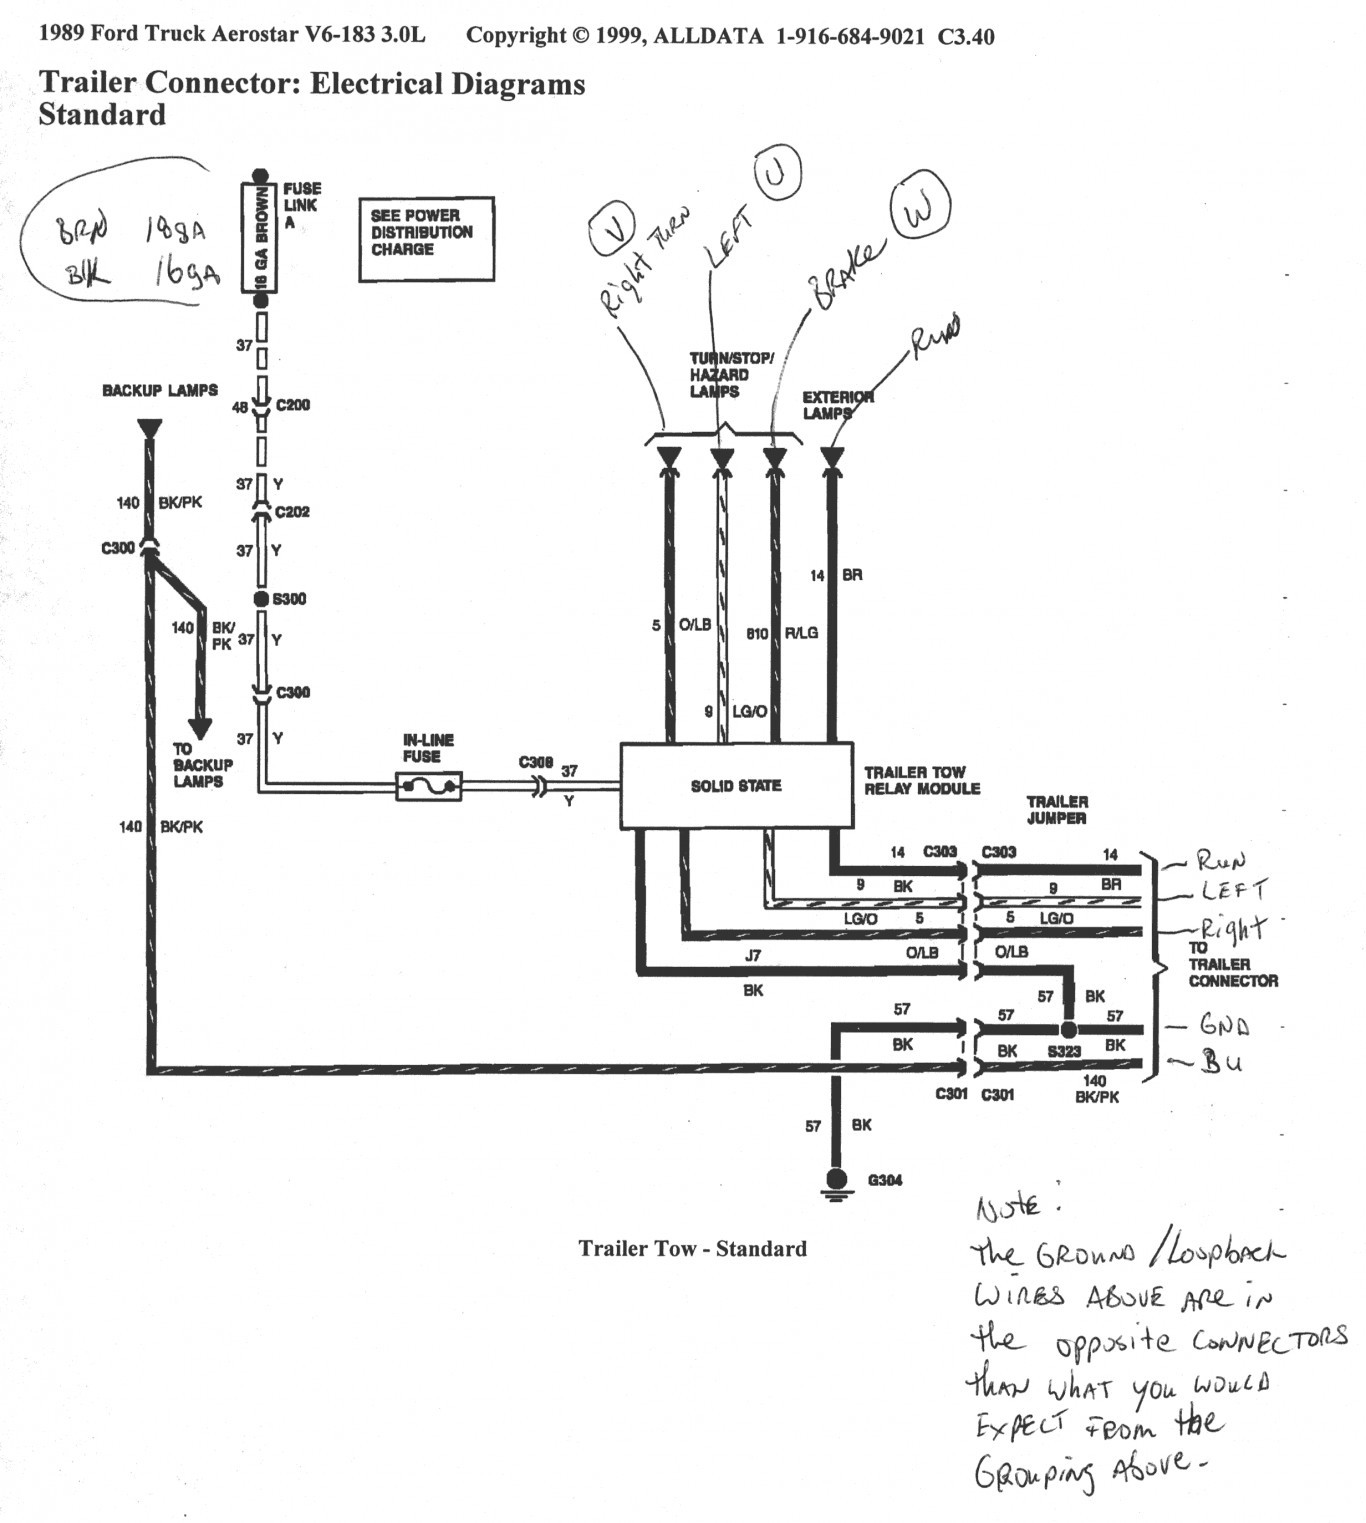 Diagram 240v Marley Wiring Plf1504da Diy Diagrams Electrical Explore Schematic 2002 Ford F 250 Super Duty 7 3 Diesel Trailer Harness Rh G News Co Single Phase